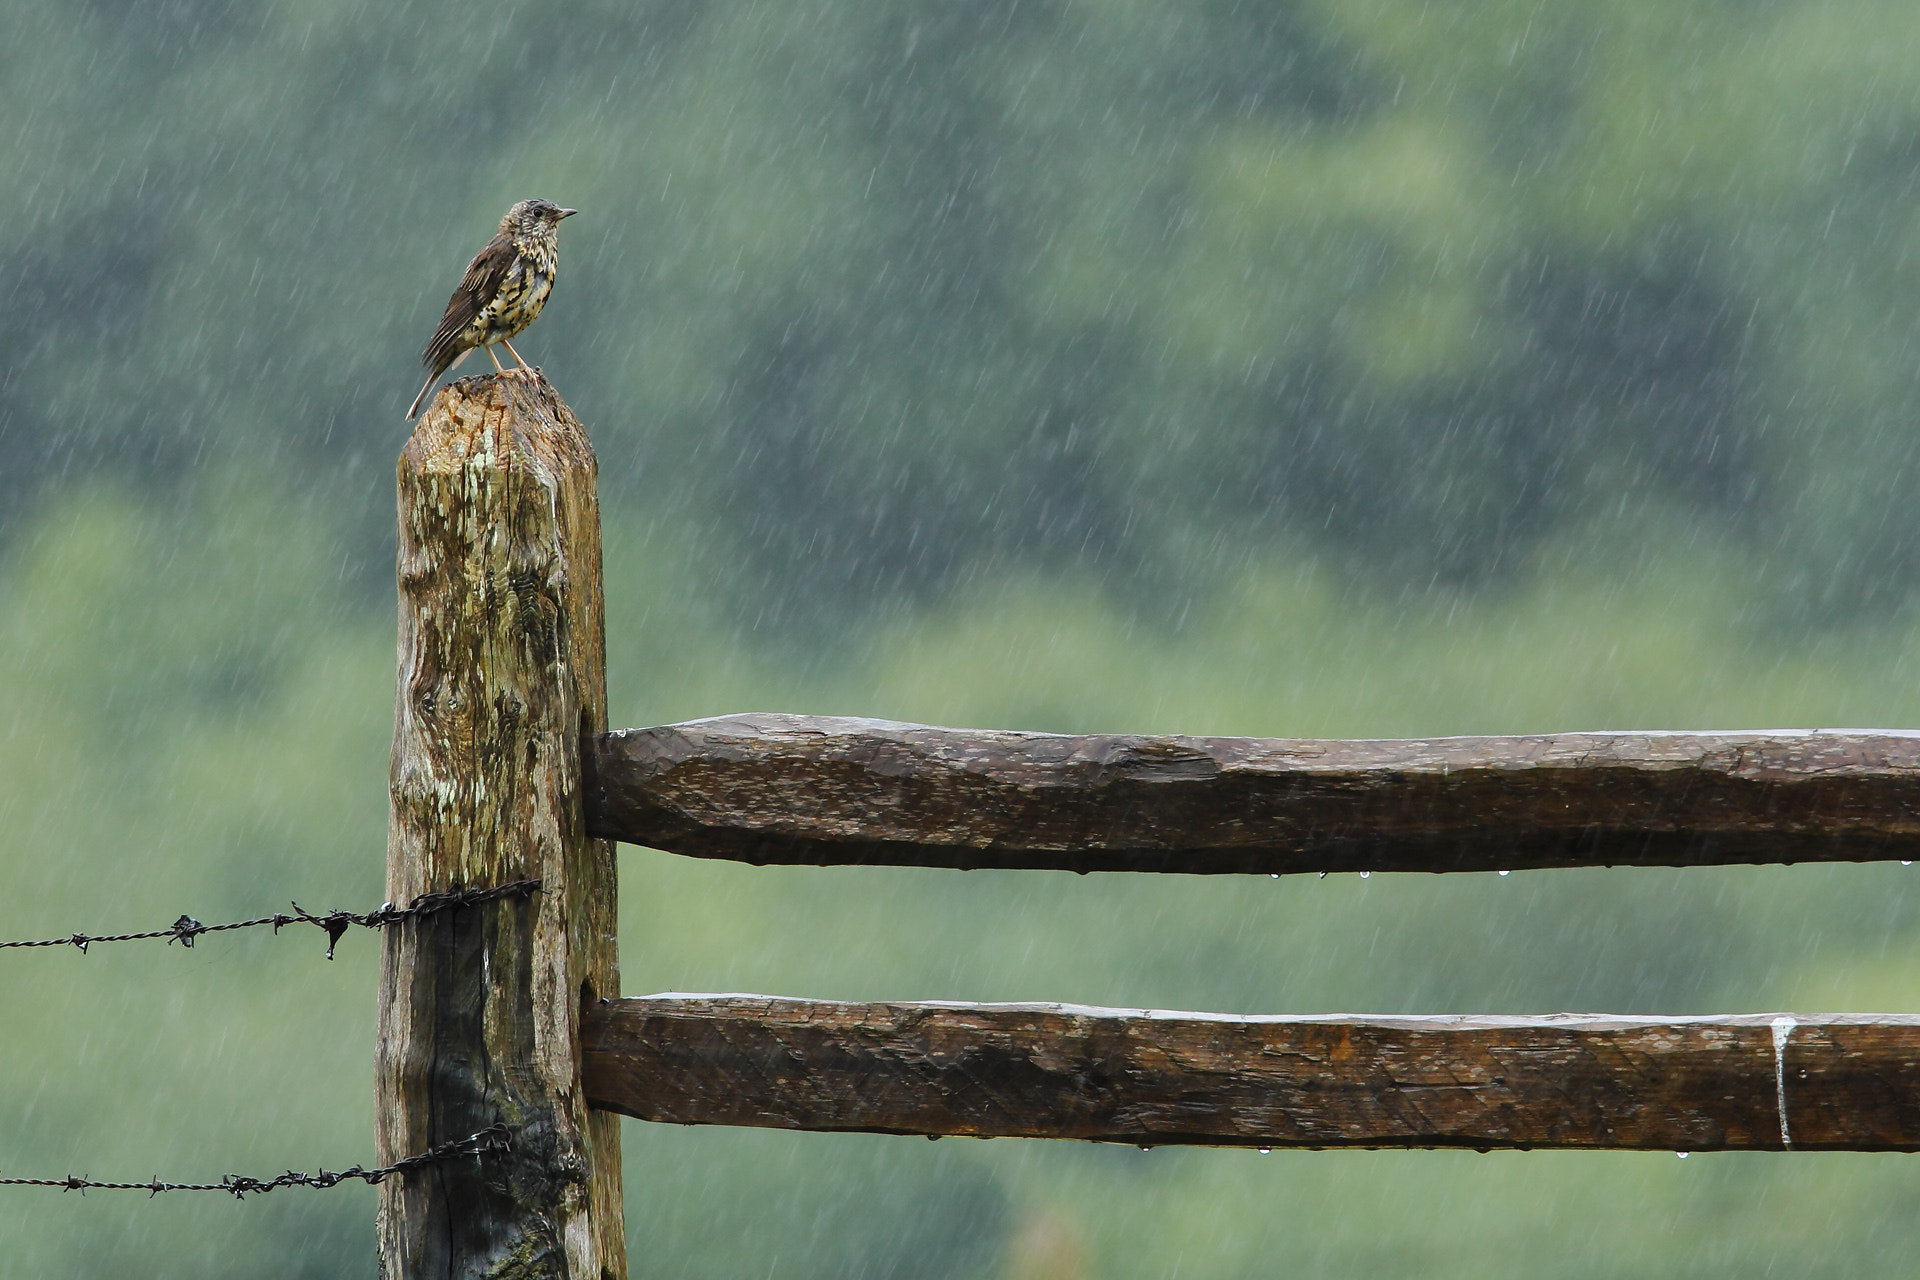 Photograph Rain by Andrés Miguel Domínguez on 500px